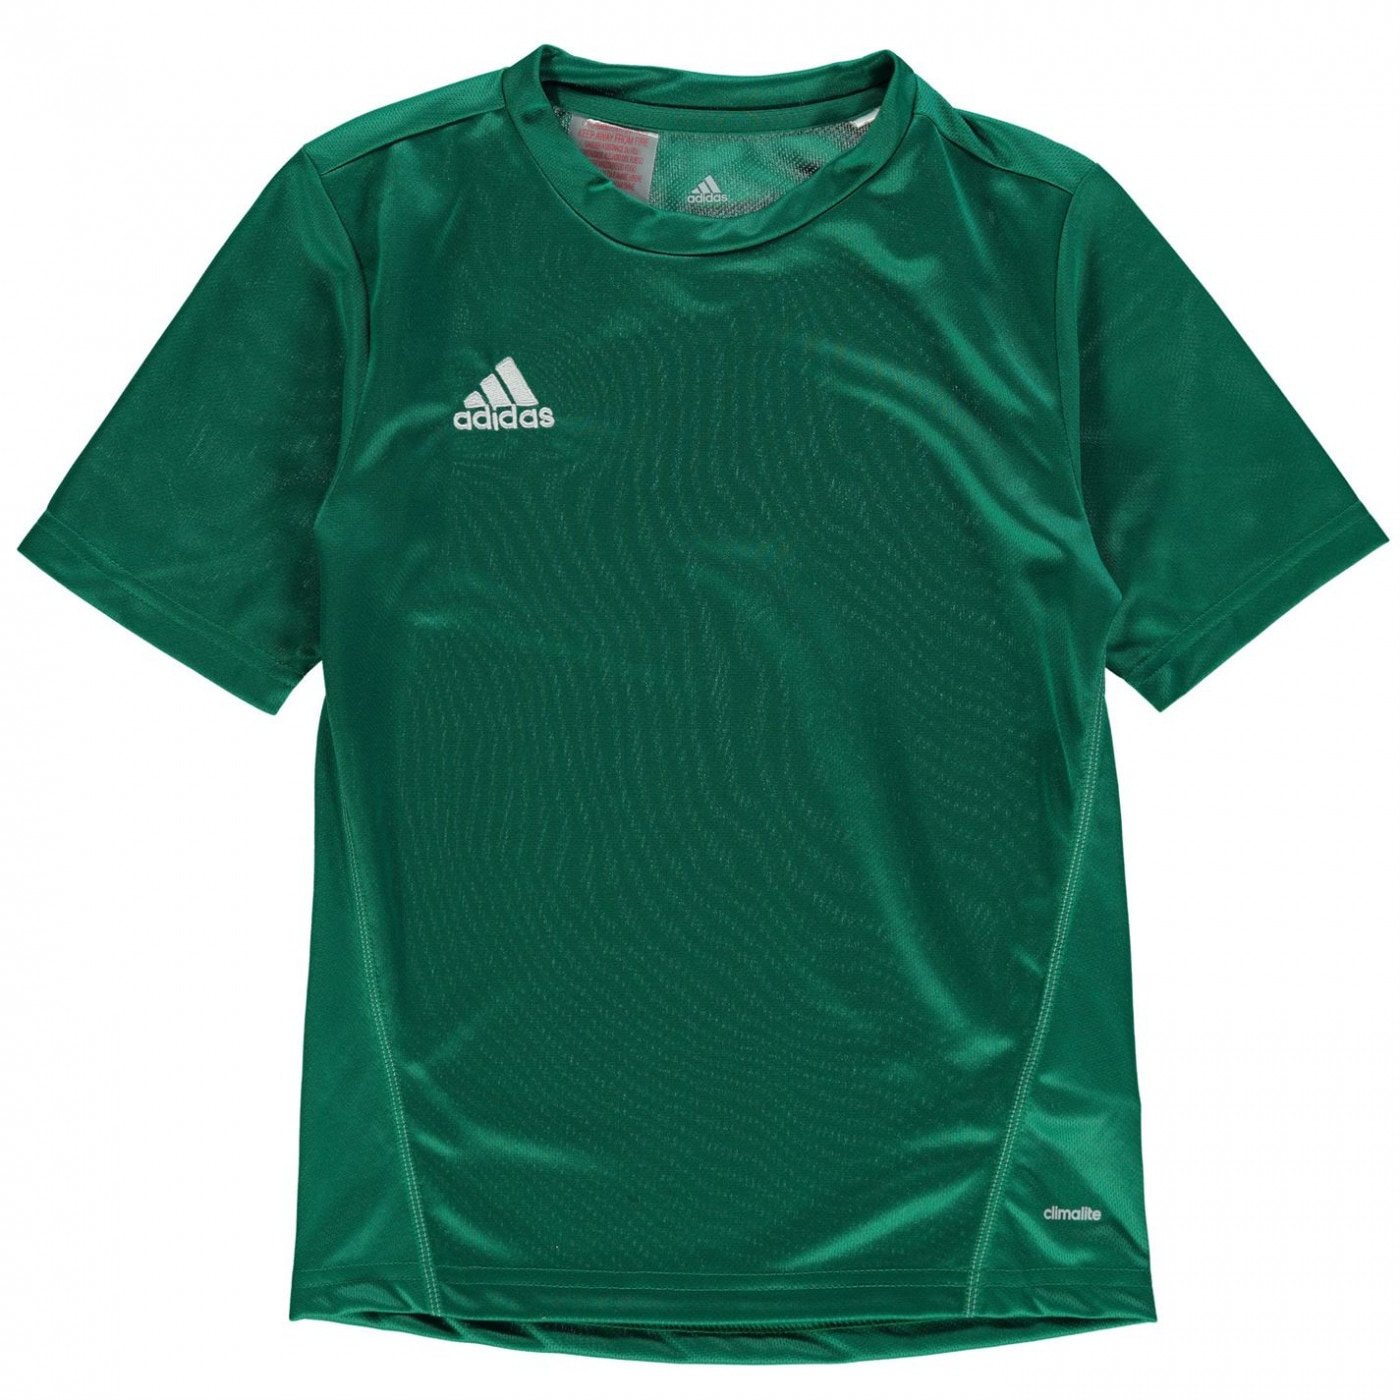 Adidas Coref Jersey Junior Boys